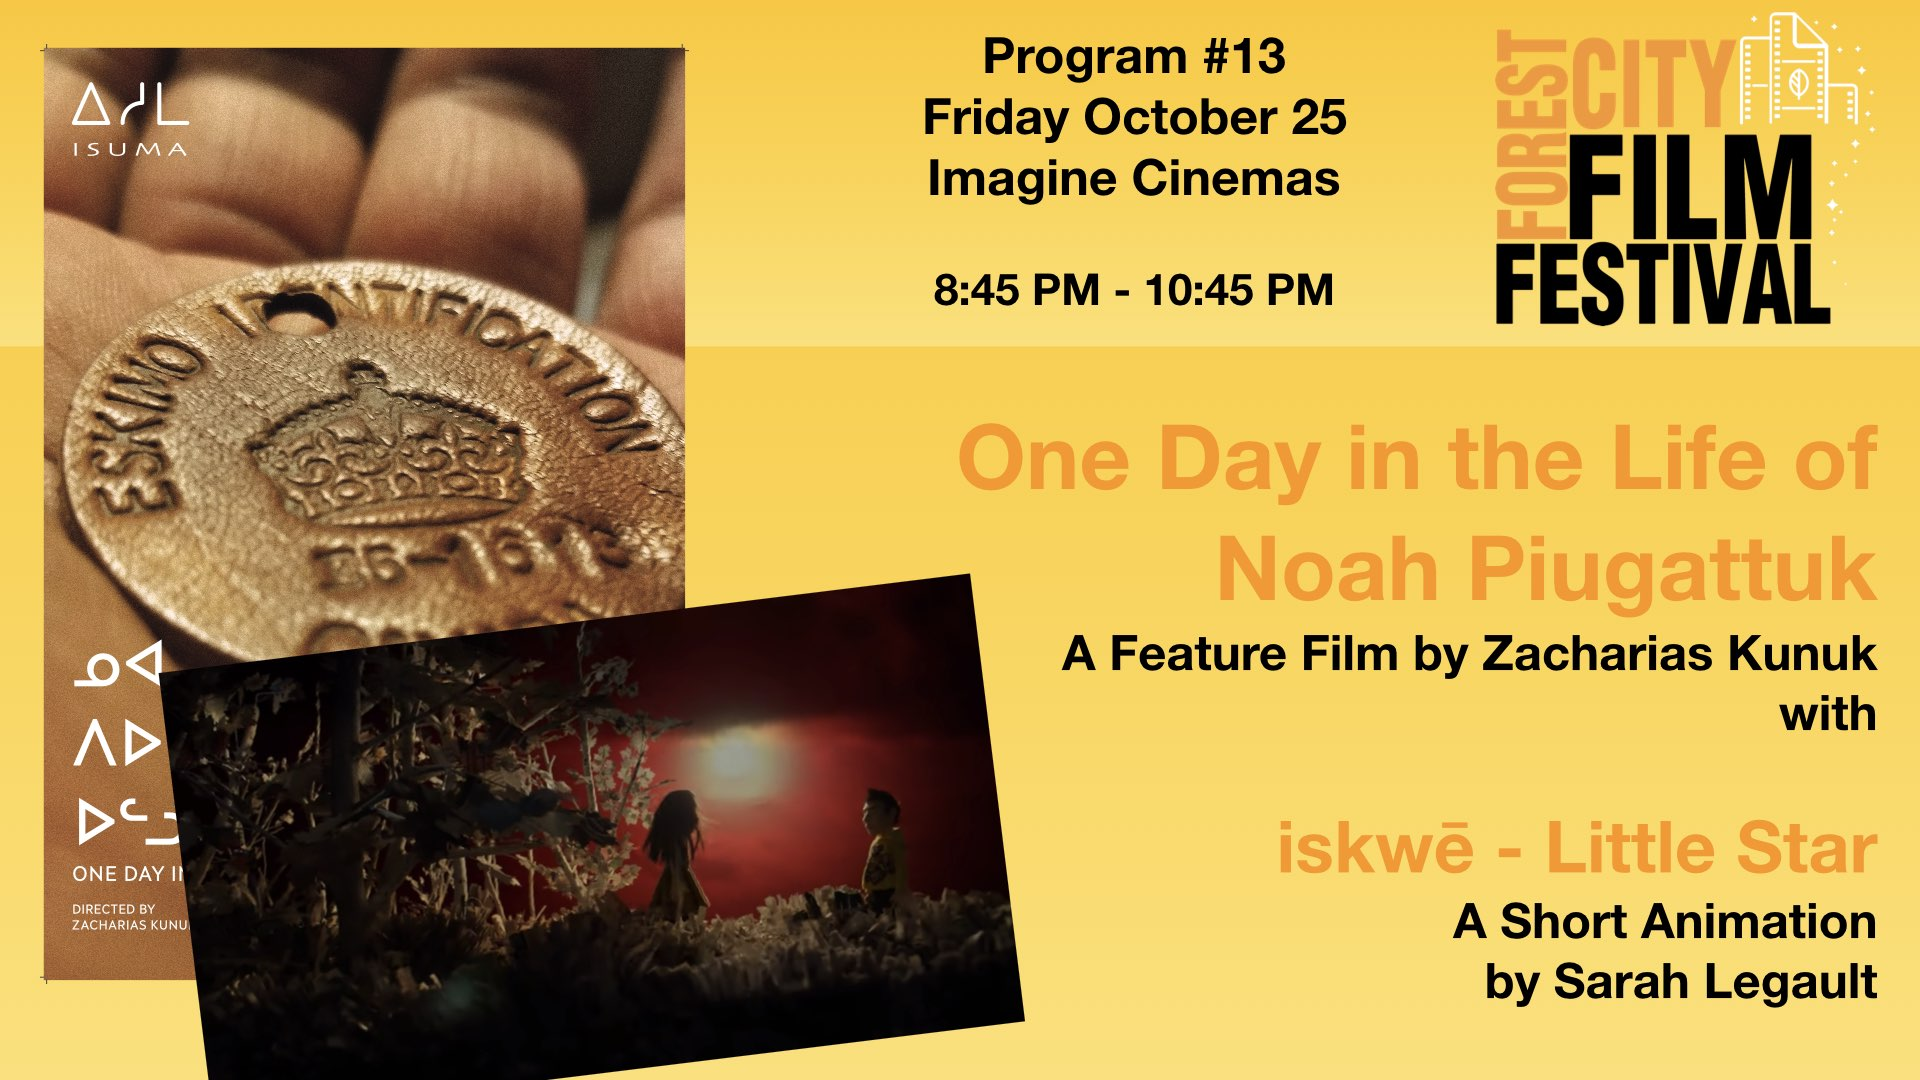 FCFF 2019 - Friday Night at Imagine Program #13 - One Day in the Life of Noah Piugattuk & iskwē- Little Star